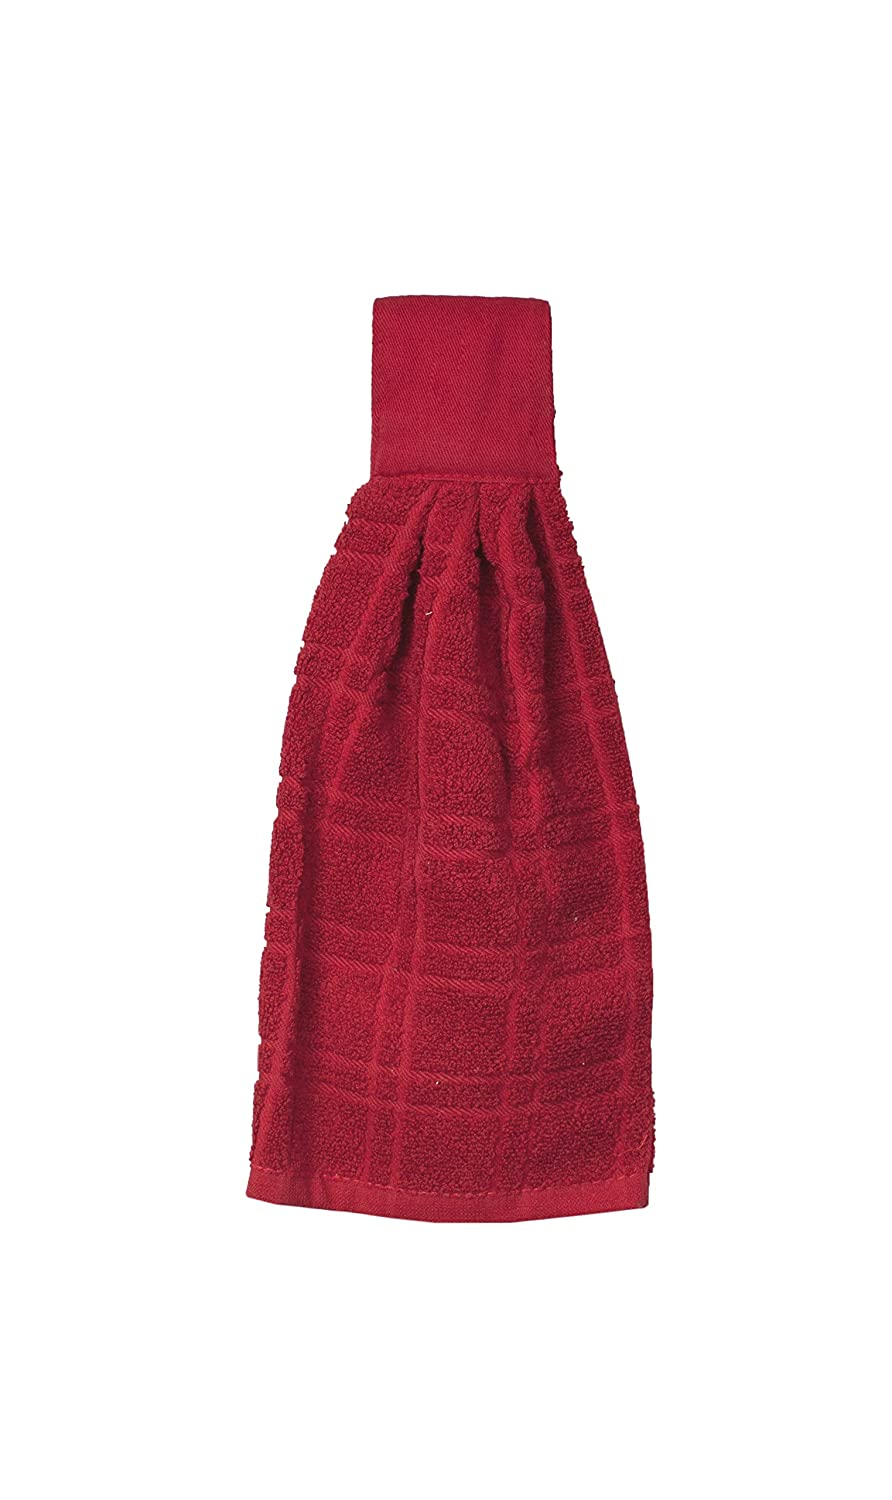 Ritz KitchenWears 100% Cotton Terry Hanging Kitchen Tie Towel, Paprika Red